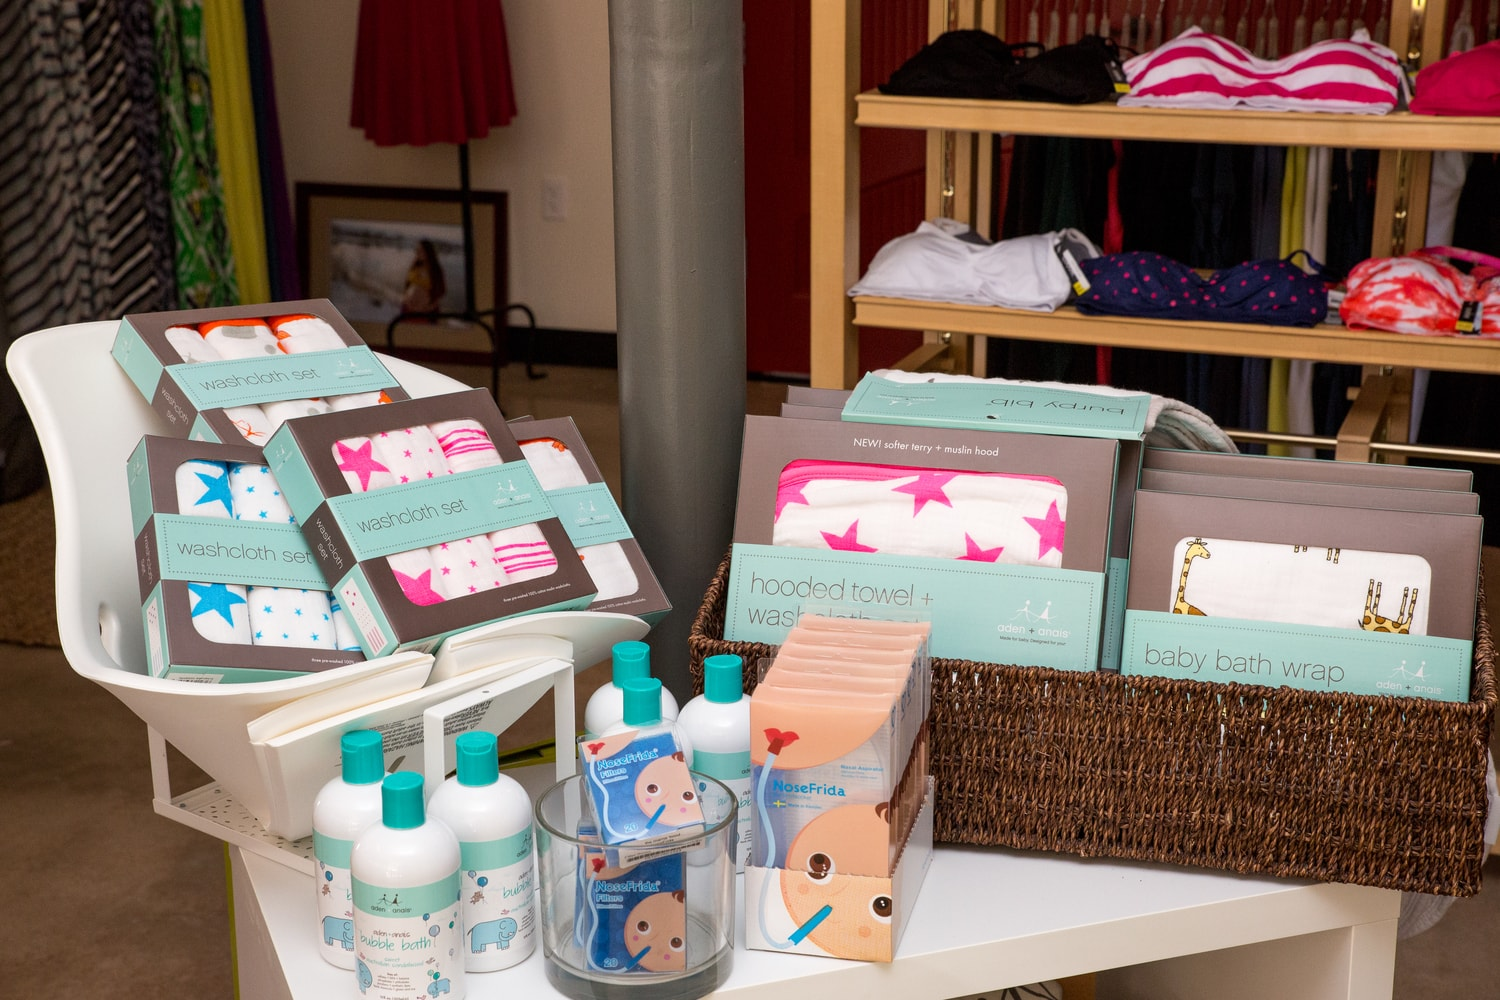 Baby Wash Clothes & Bath Accessories | mama 'hood Maternity Store Denver & Boulder, CO